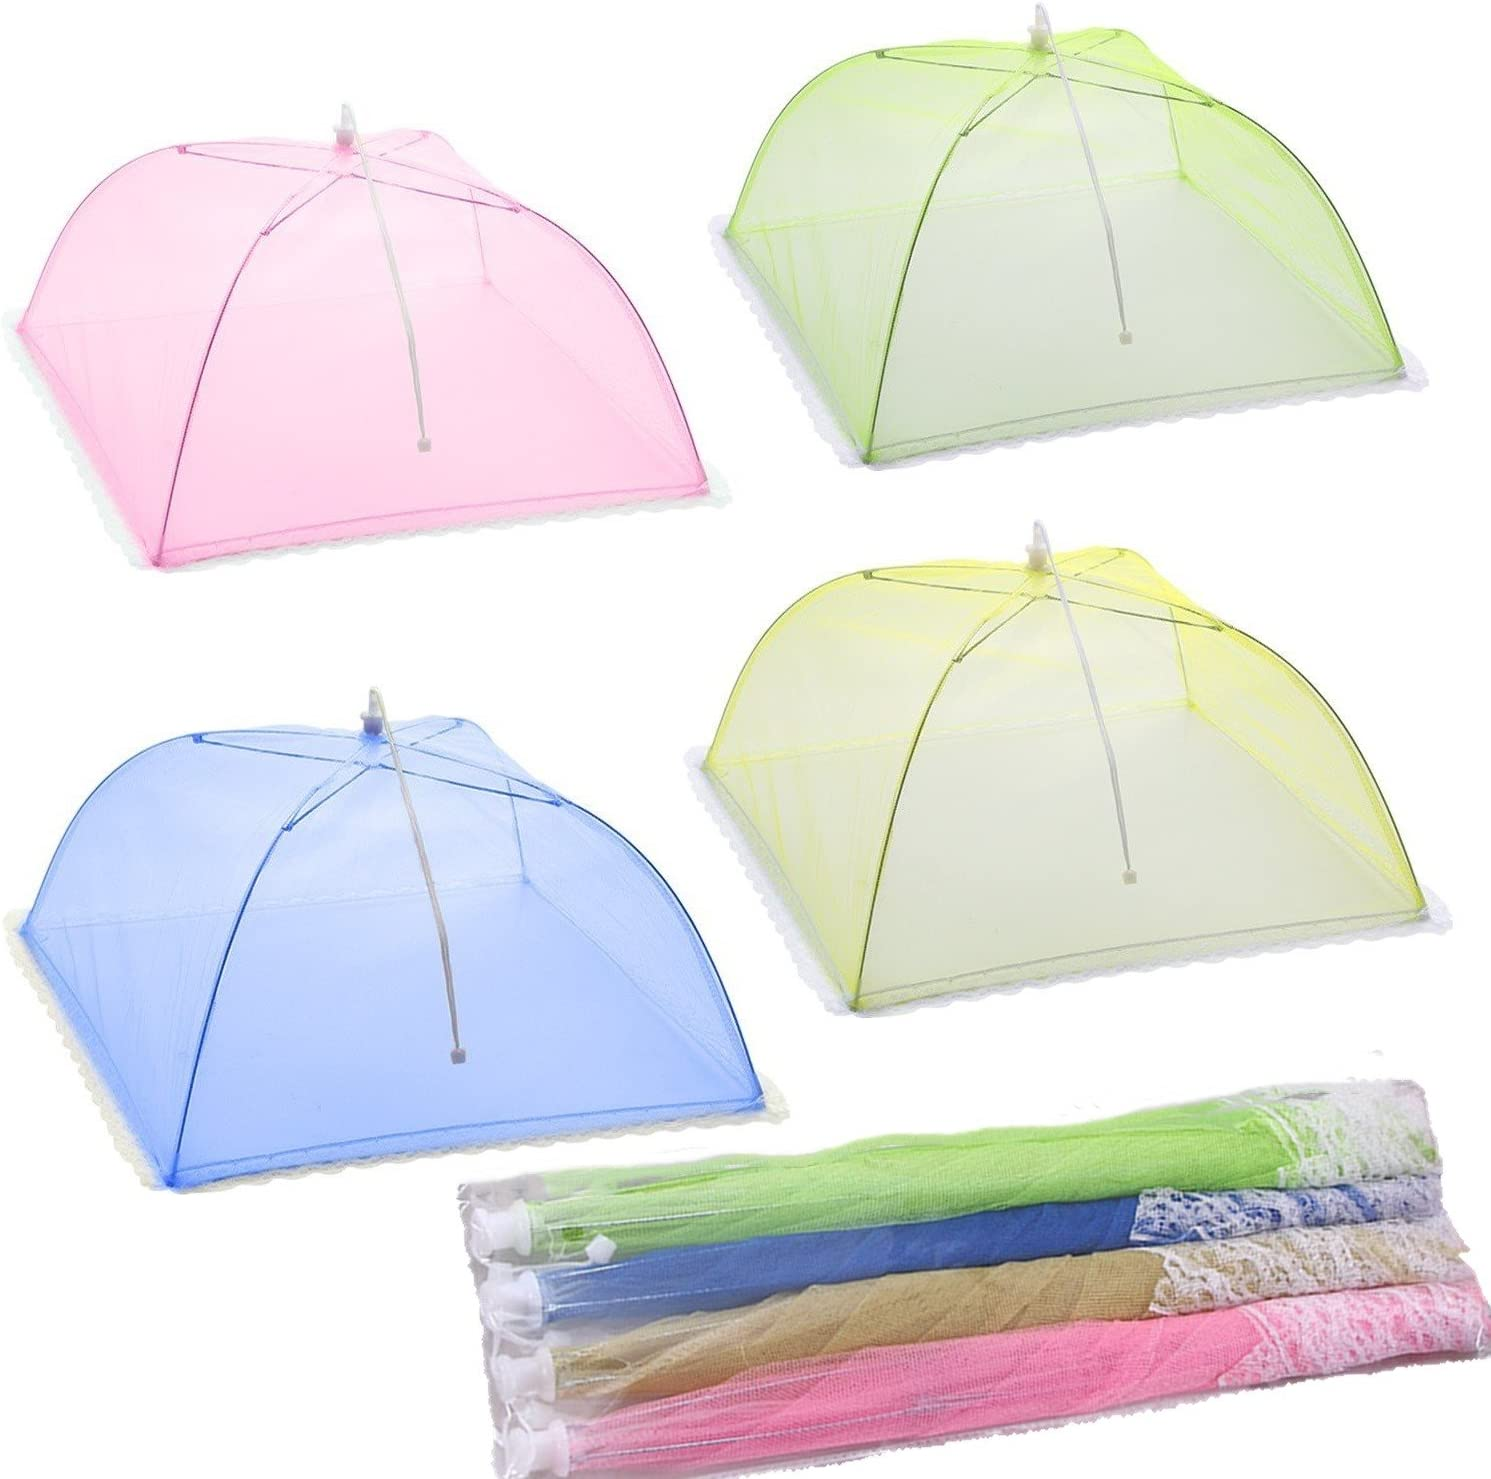 Mesh Screen Food Cover Tents, 4 Pack Umbrella Screens to Keep Bugs and Flies Away From Food at Picnics, BBQ & More